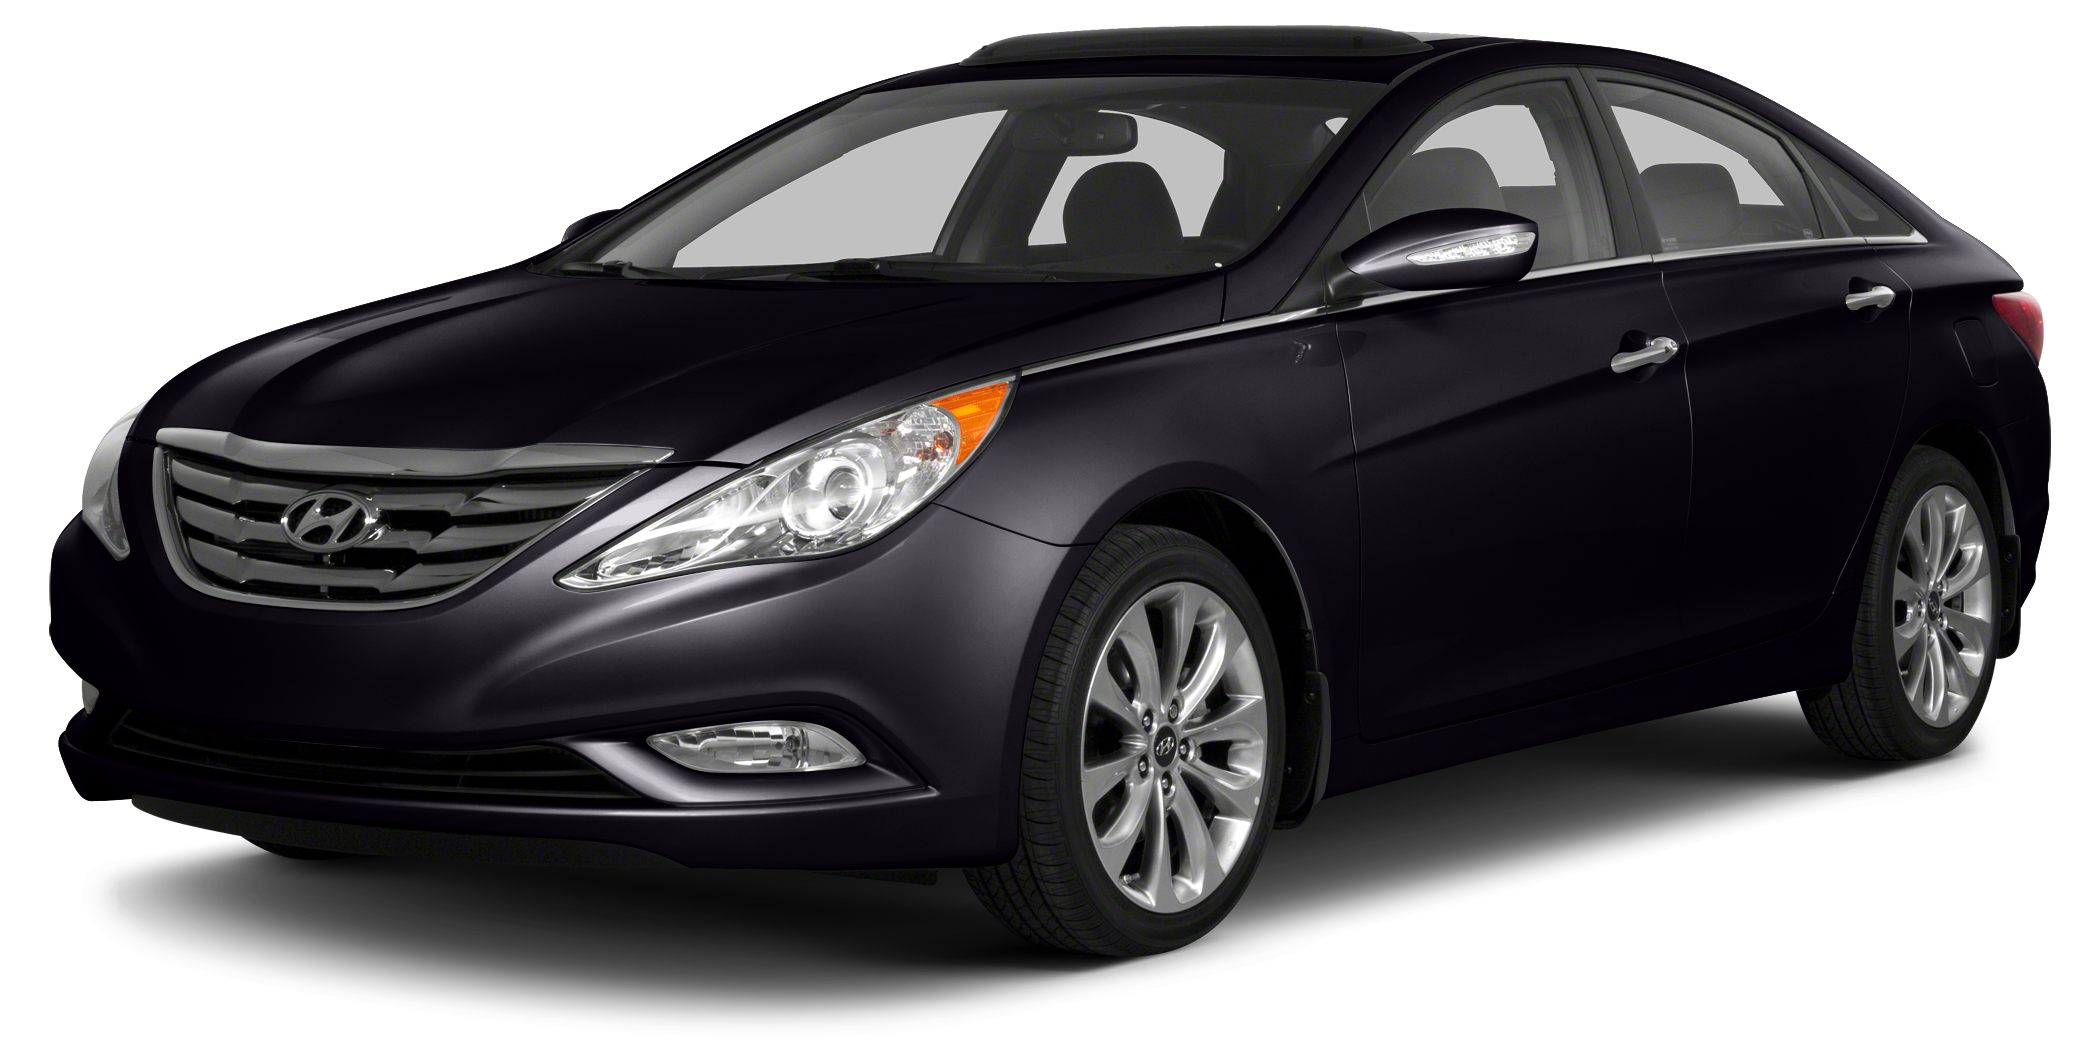 2013 Hyundai Sonata SE Hyundai Certified and Black Leather Its time for First Hyundai What are